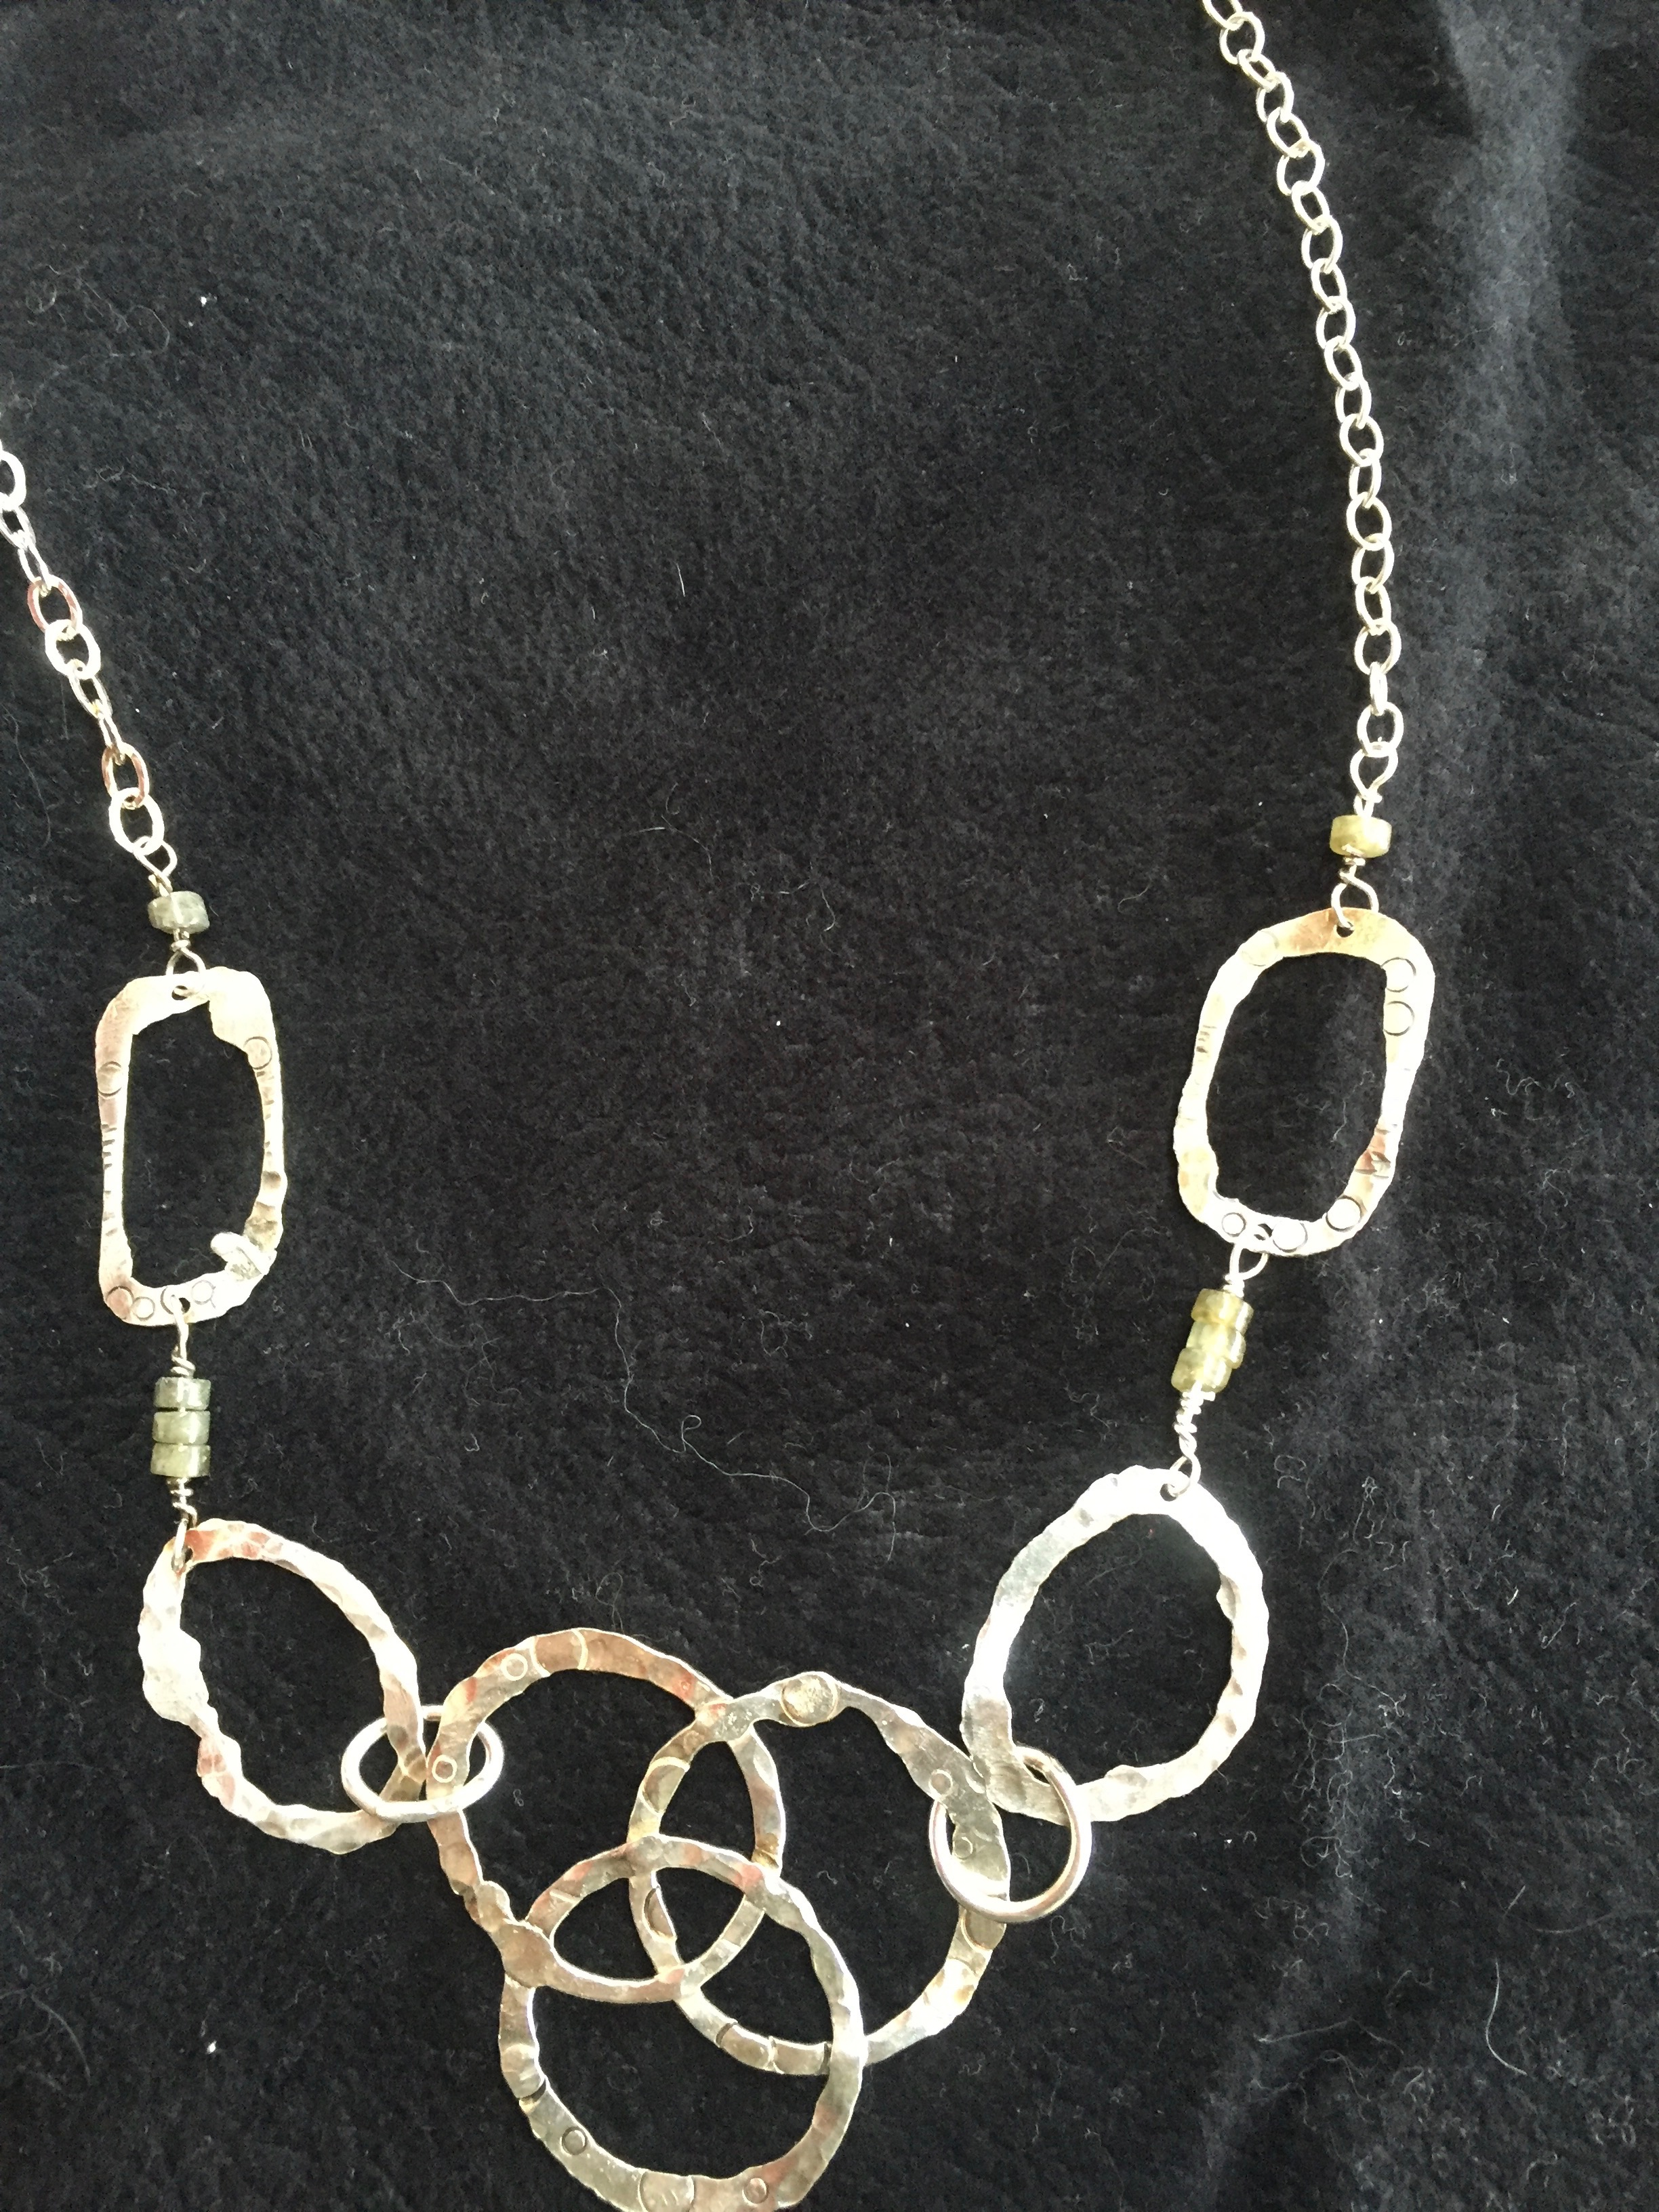 Necklace  no.2   $150